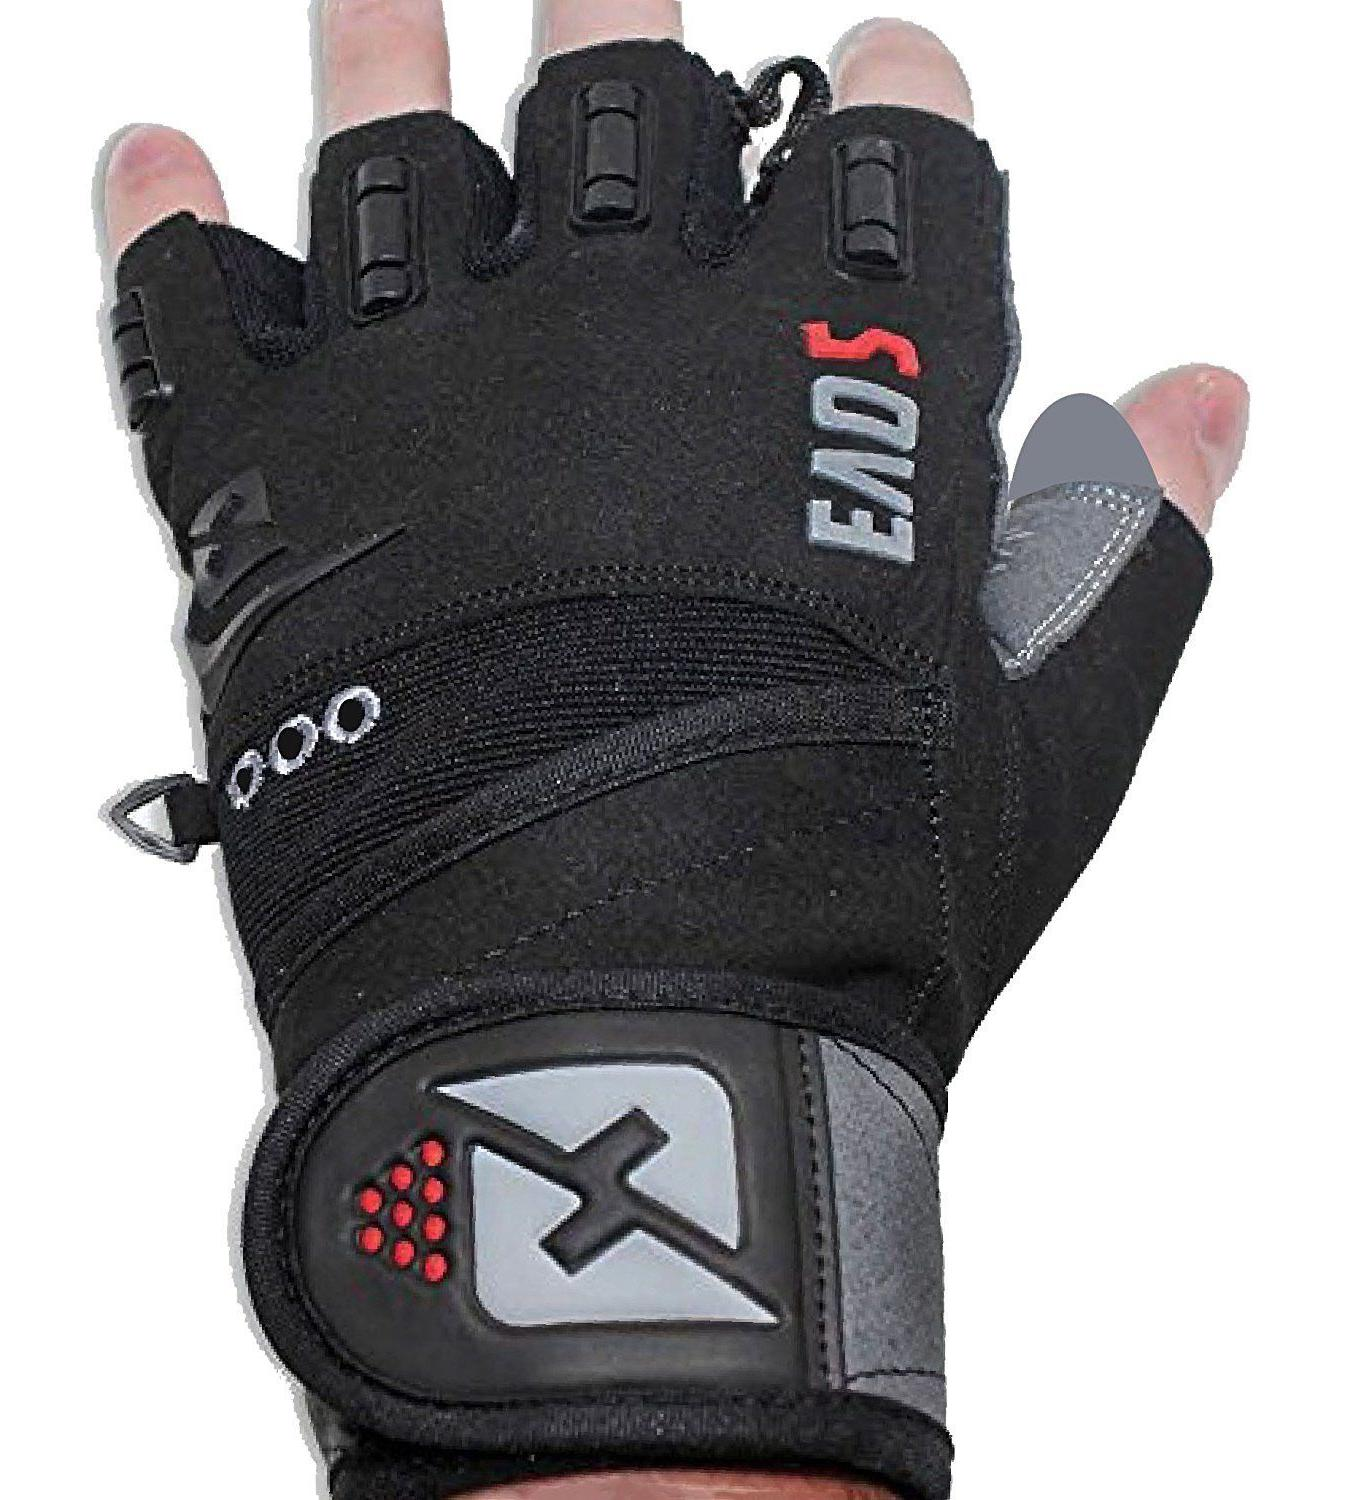 2016 2 Gloves Wrist Wrap Support